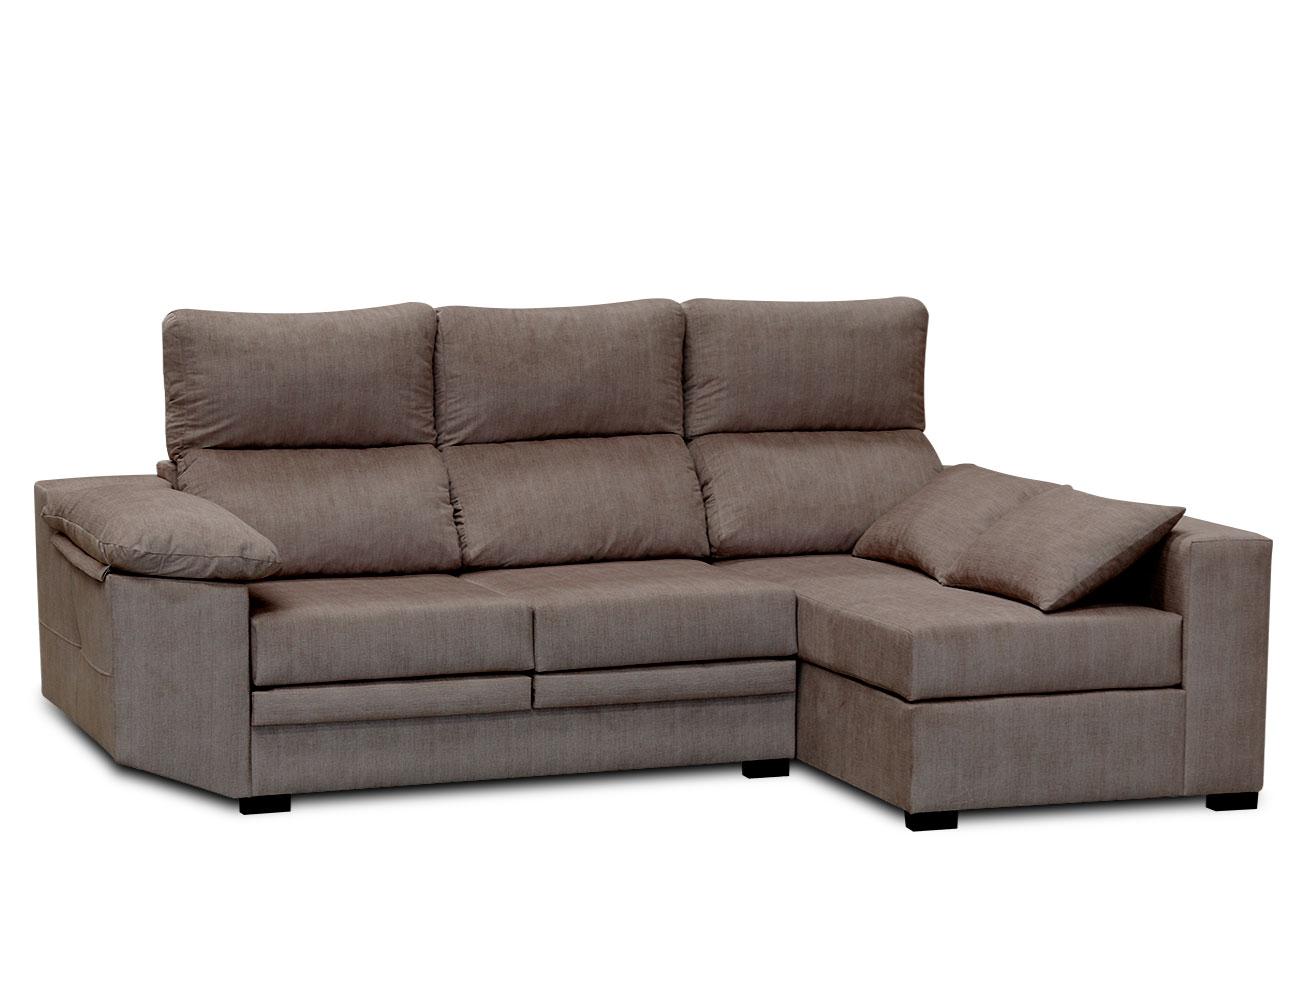 Sofa chaiselongue moderno cojines moka 3